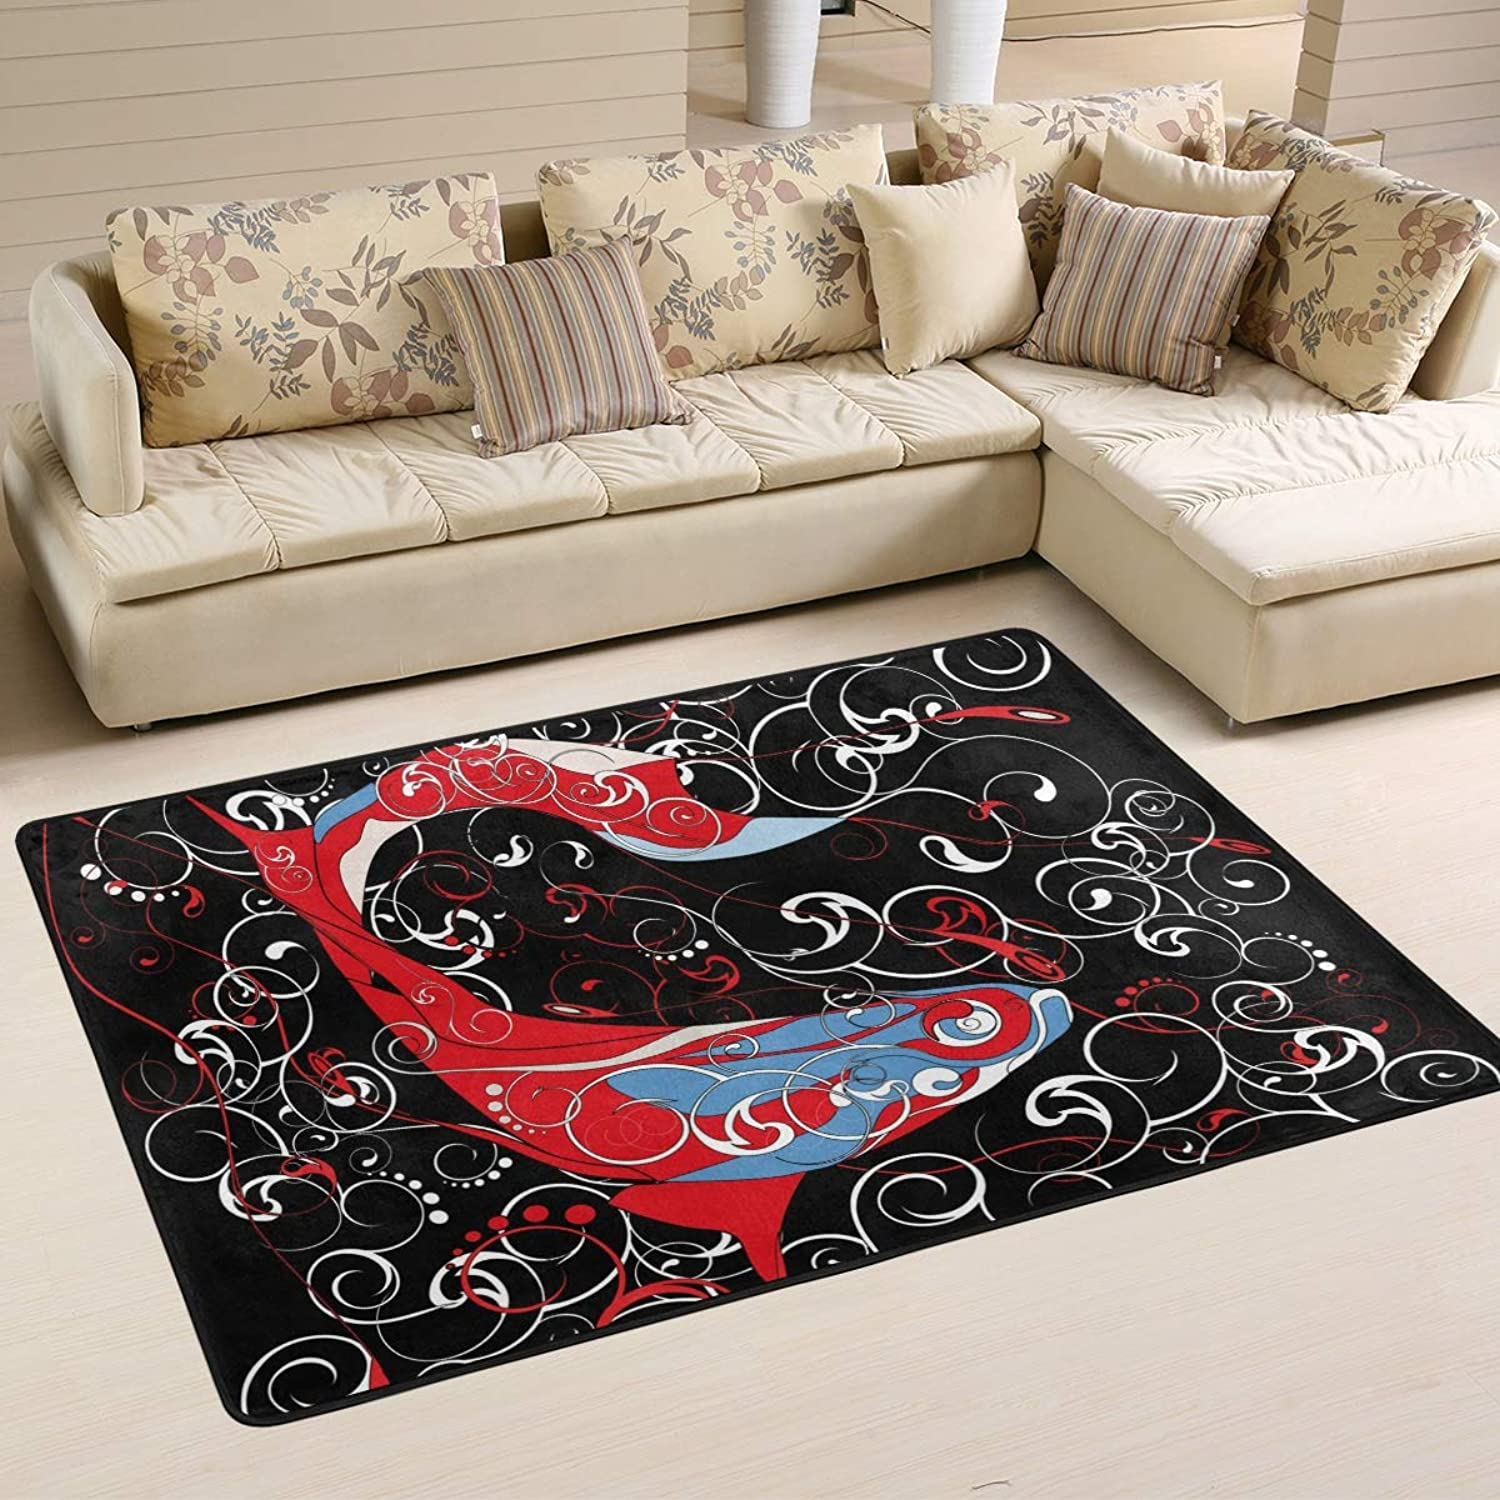 Area Rugs Doormats Koi Abstract Red Line Fish Soft Carpet Mat 6'x4' (72x48 Inches) for Living Dining Dorm Room Bedroom Home Decorative